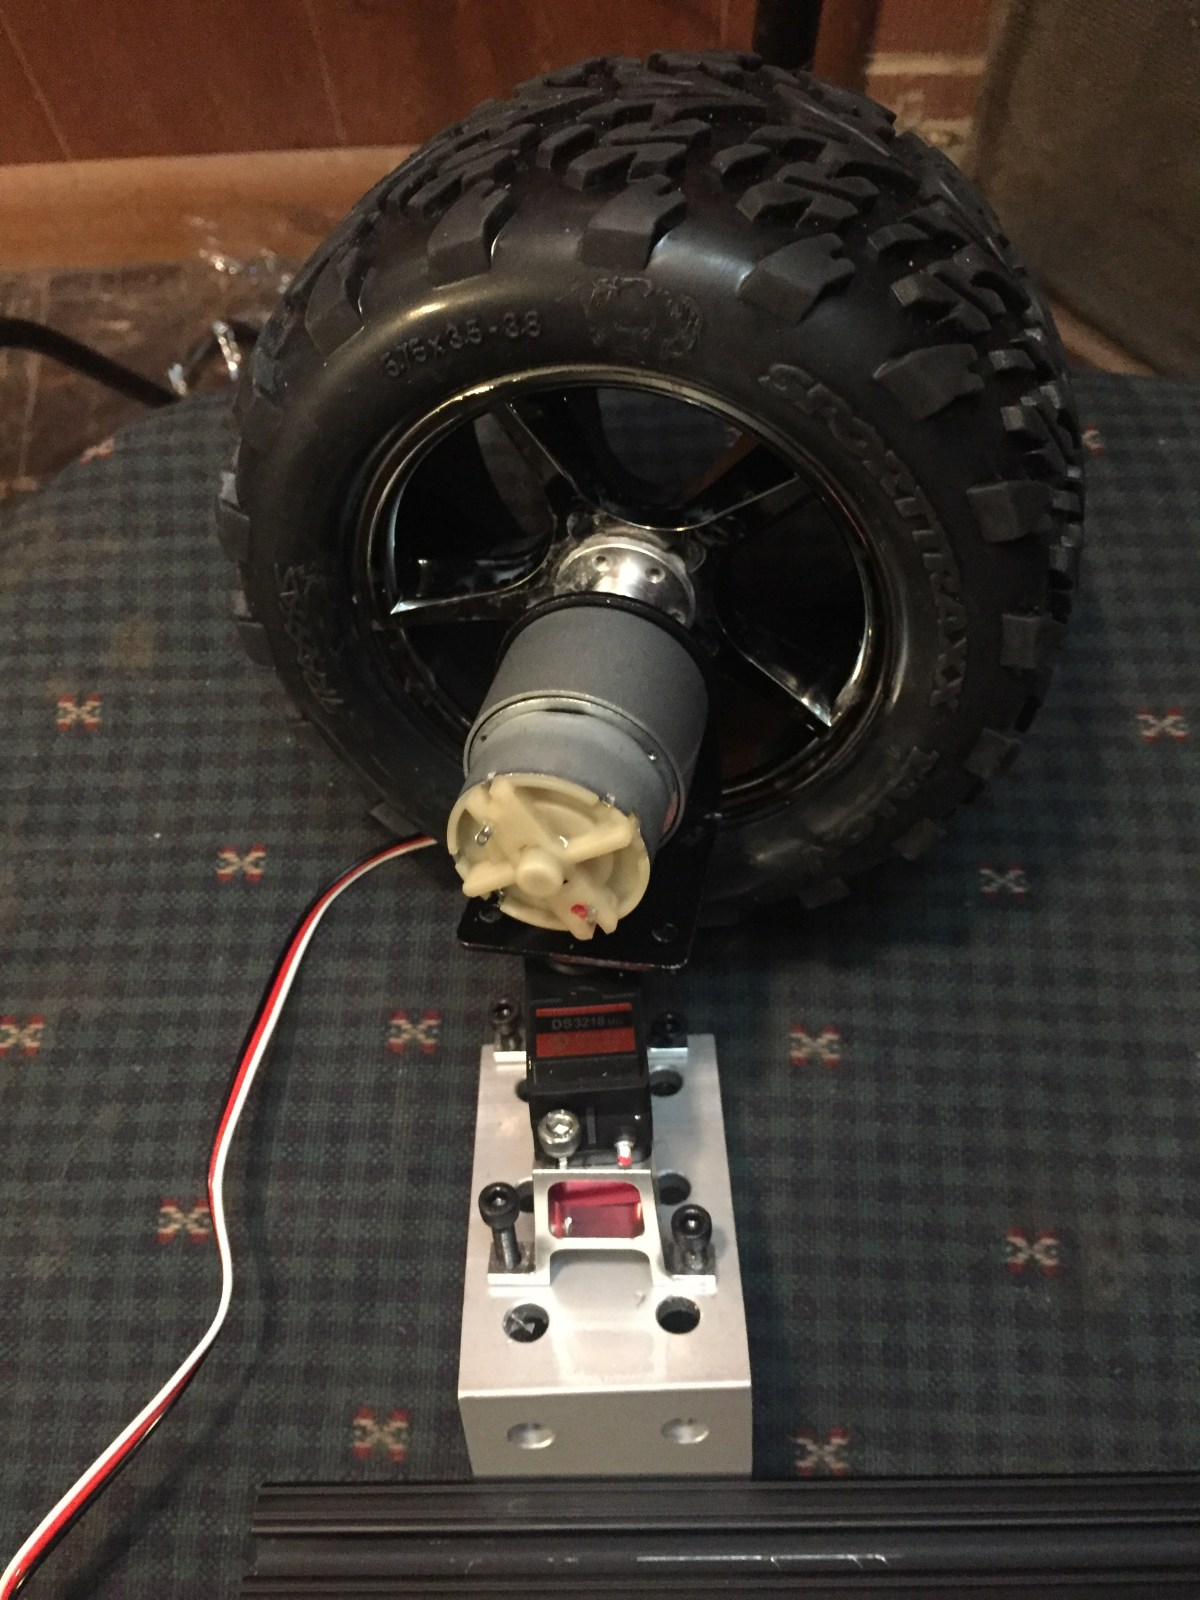 Which servo motor I'm using for my Arduino project